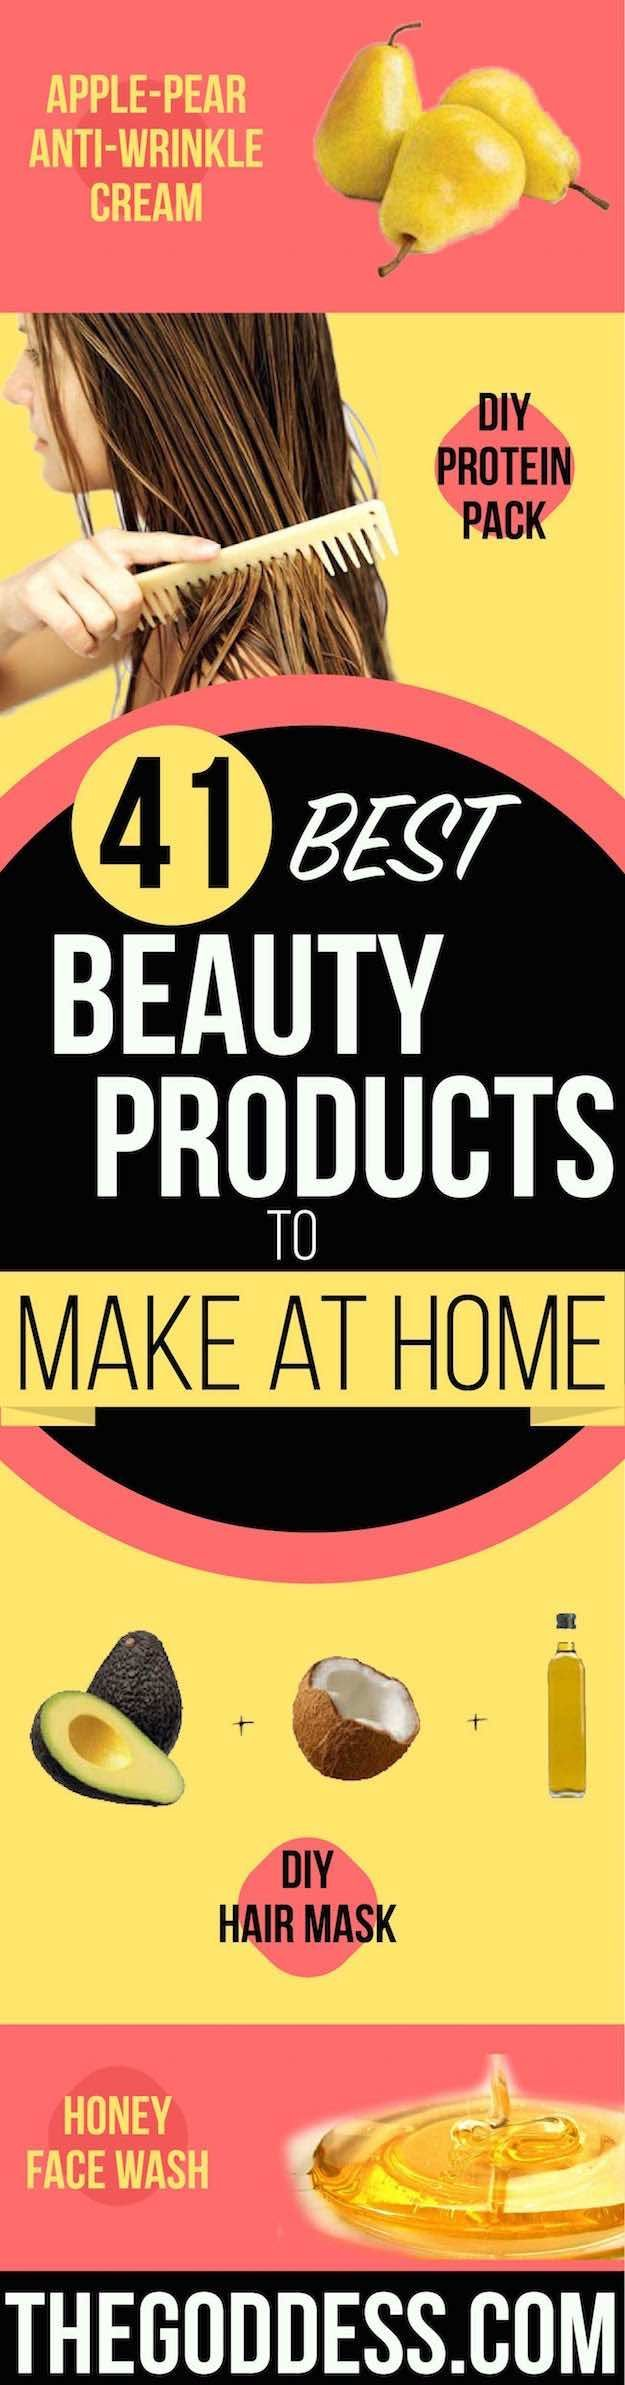 Best Beauty Products to Make at Home - Simple DIY Recipes and Tutorials for Essential Oils, Shaving Cream, Sugar Scrubs, Body Butter, Bath Bombs and Hand Soaps - Natural Anti Aging Remedies That Use Aloe Vera, Baking Soda, Water, Coonut Milk and more! -